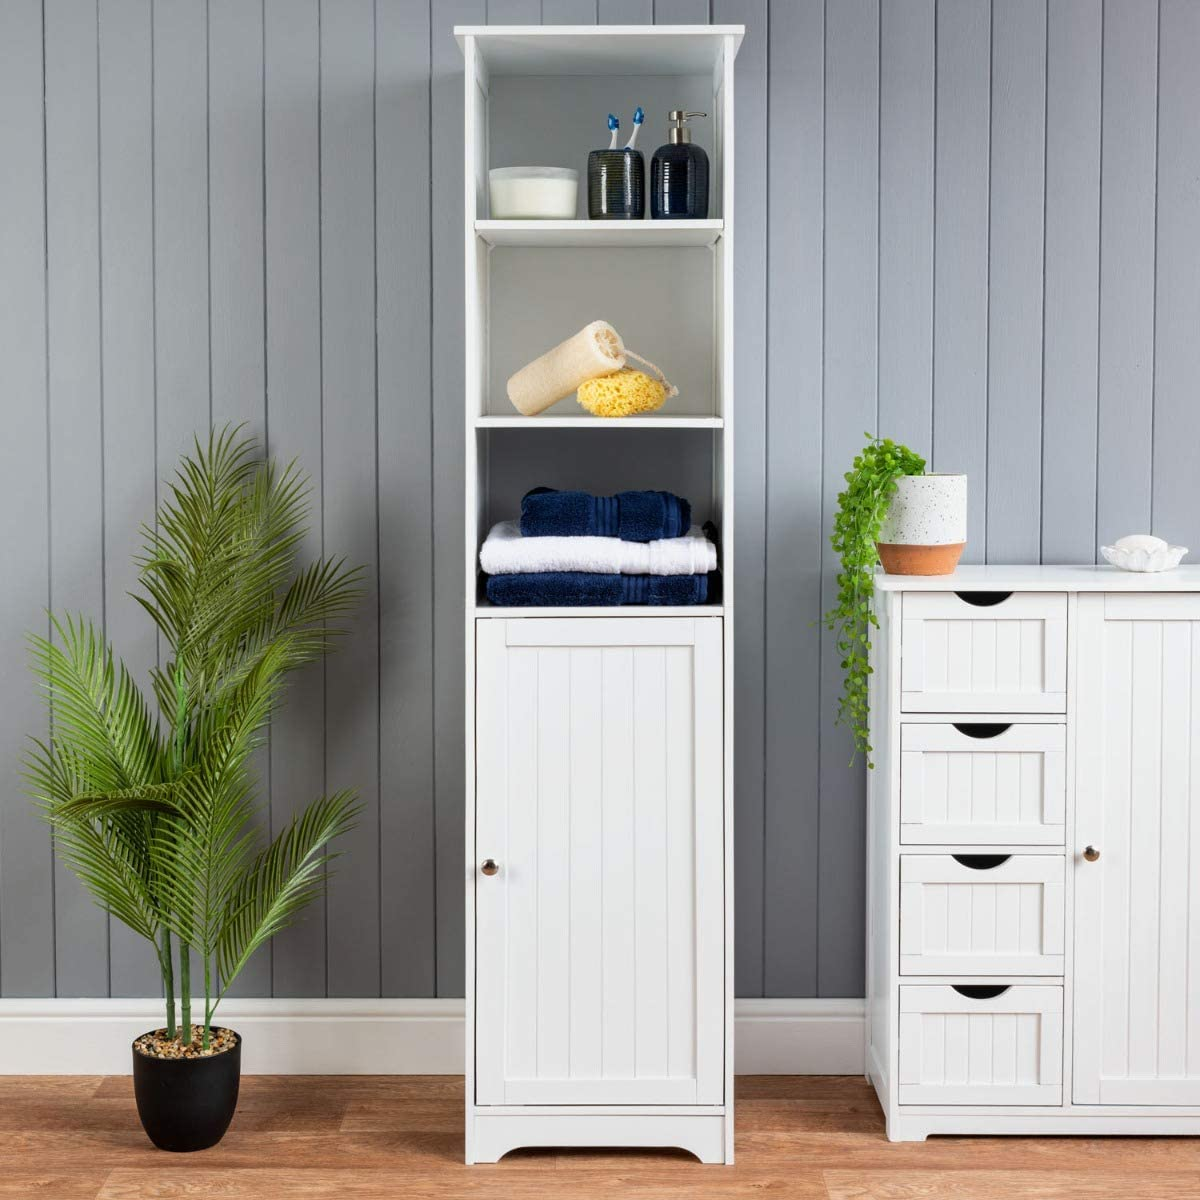 Christow Tall Bathroom Cabinet Wooden White Tallboy Unit 3 Shelf Storage Cupboard Amazon Co Uk Kitchen Home